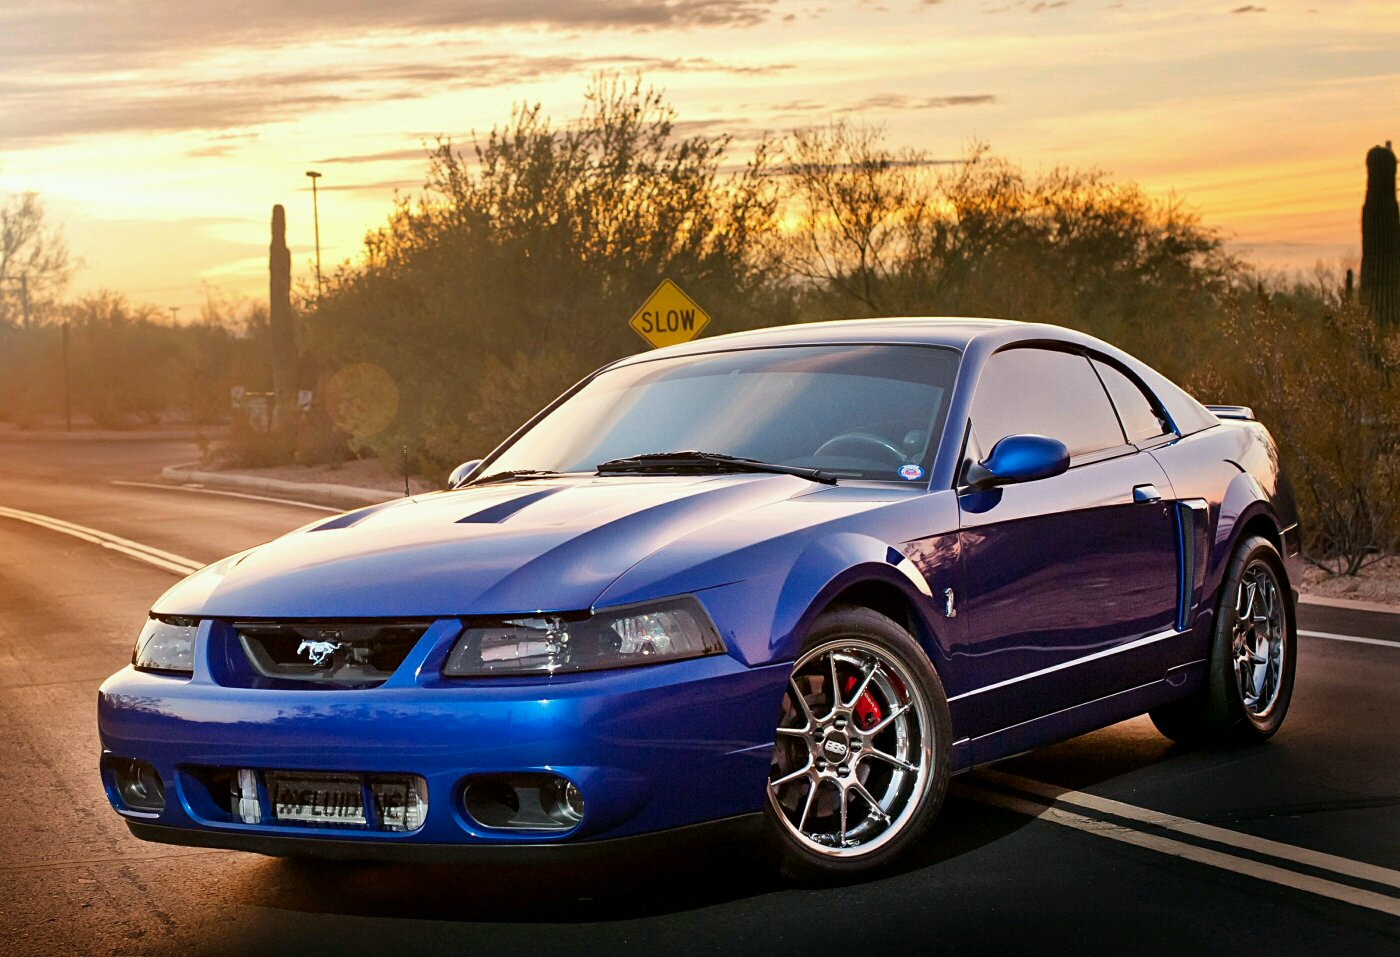 4th Gen Lovers Mustang Any 2003 Gt